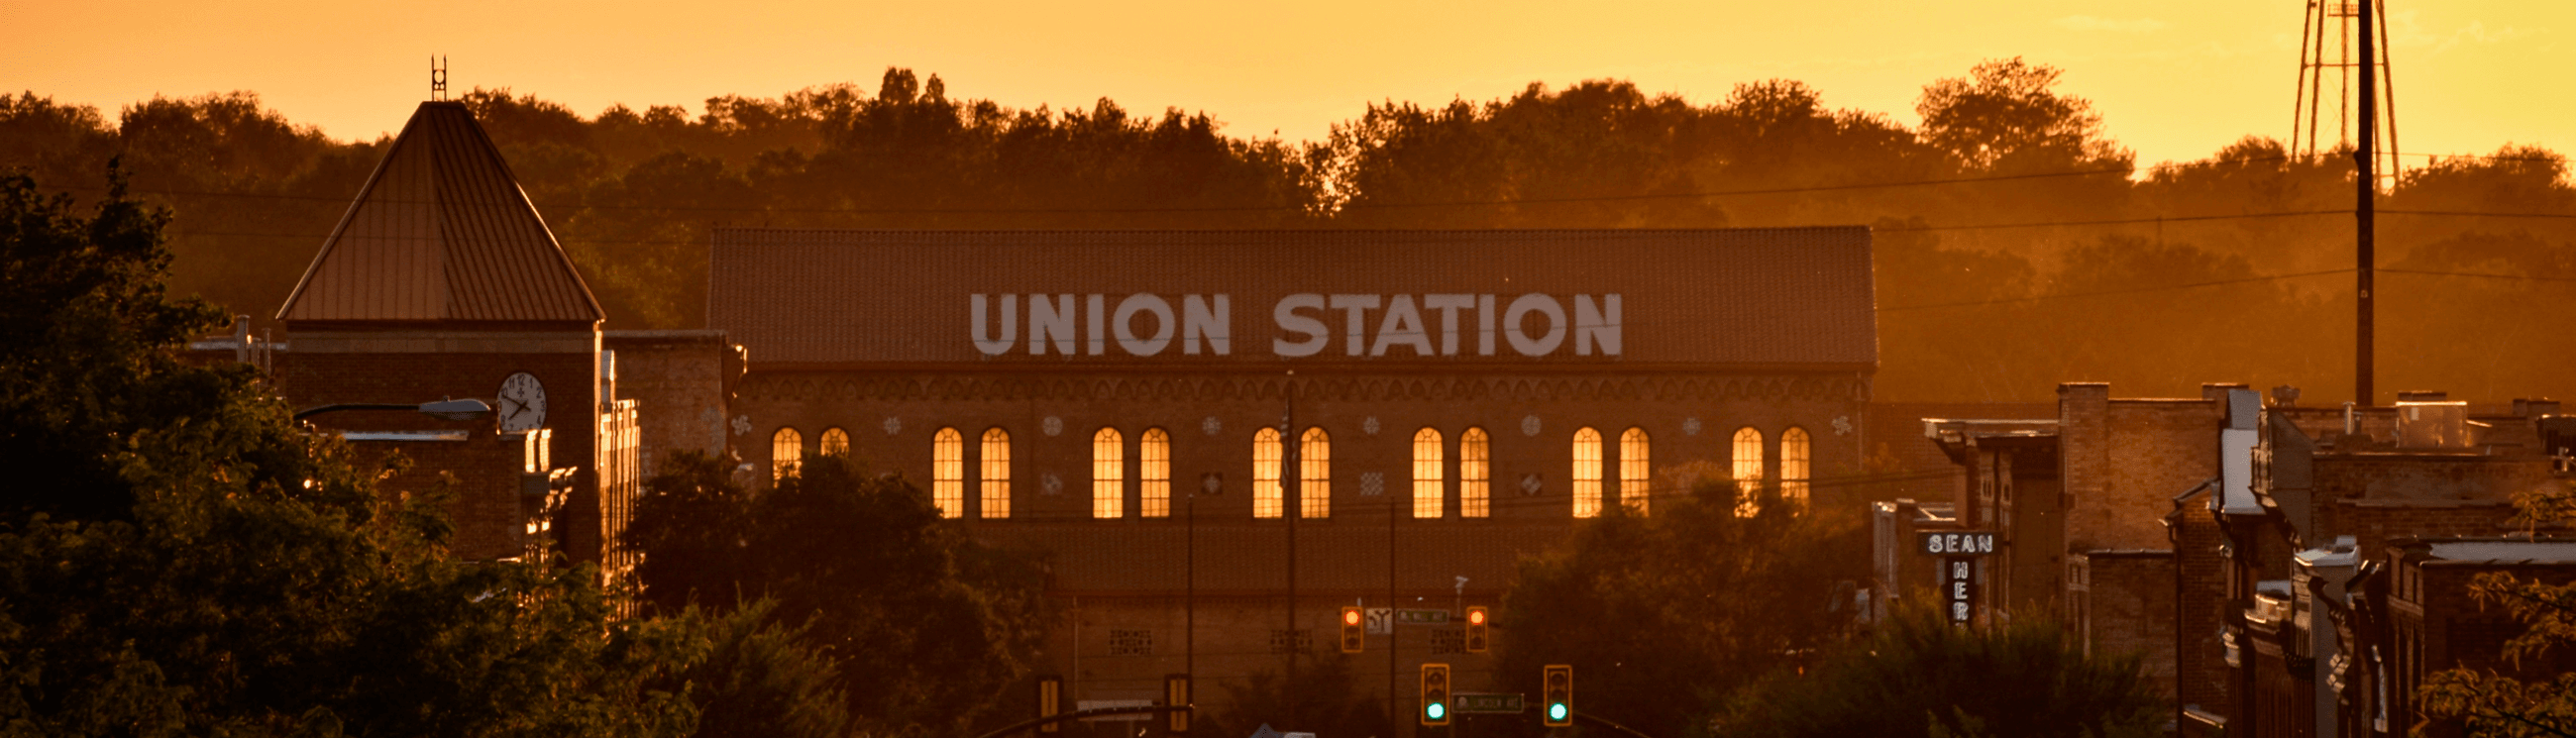 Union Station Sunset